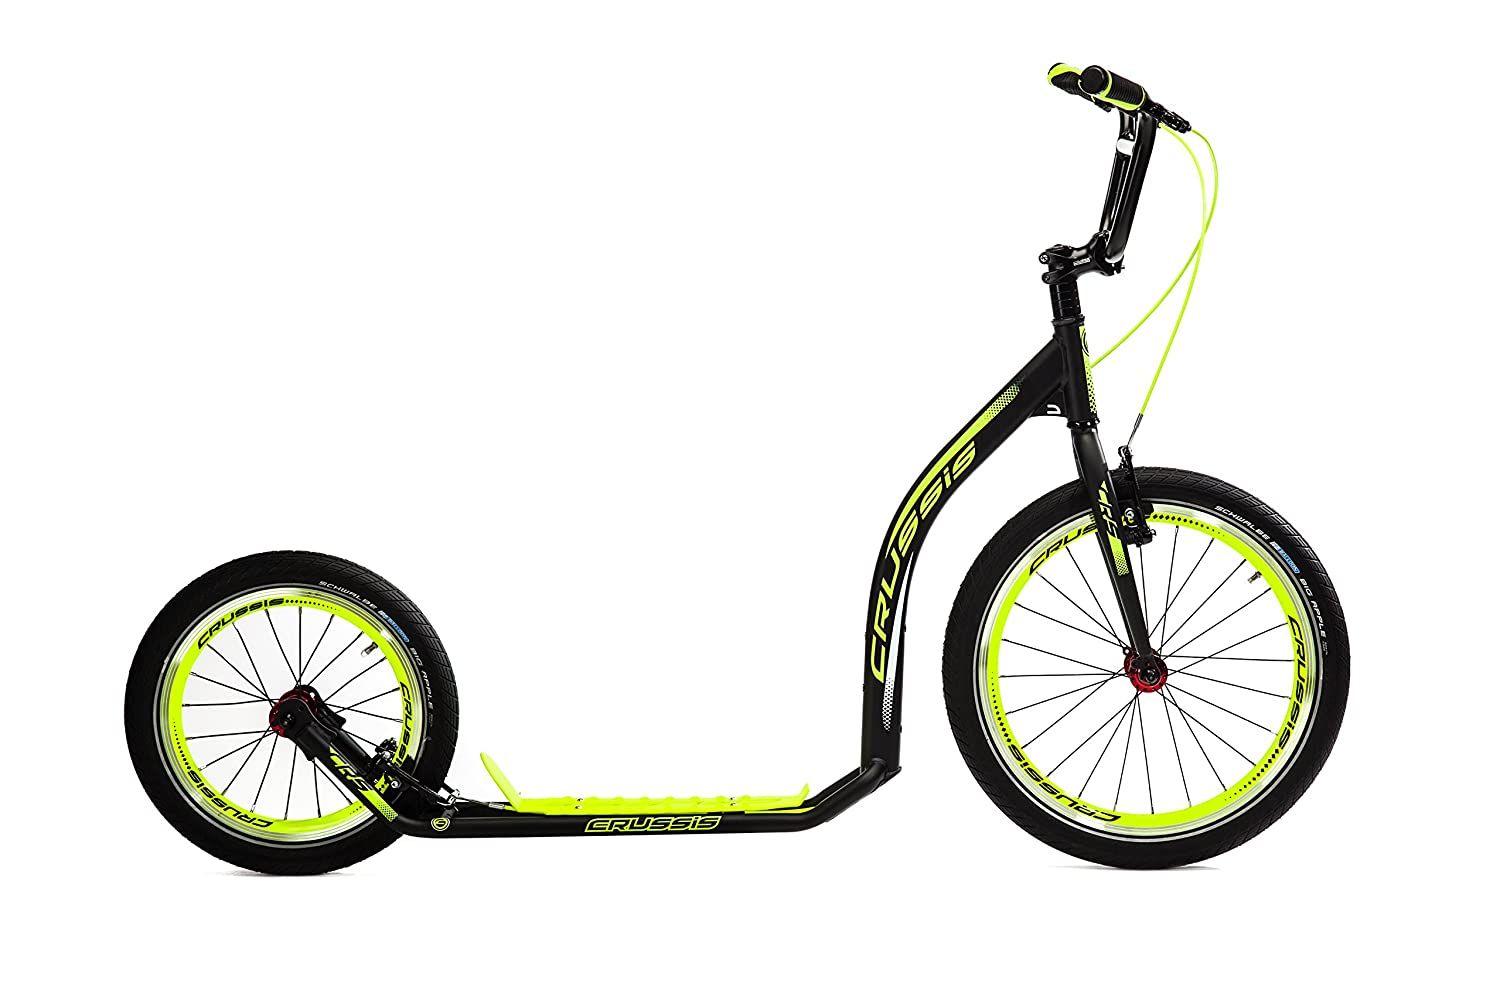 Crussis Active 4.4 6 ft. 5 in. Adult Sport Kick Scooter - Black & Neon